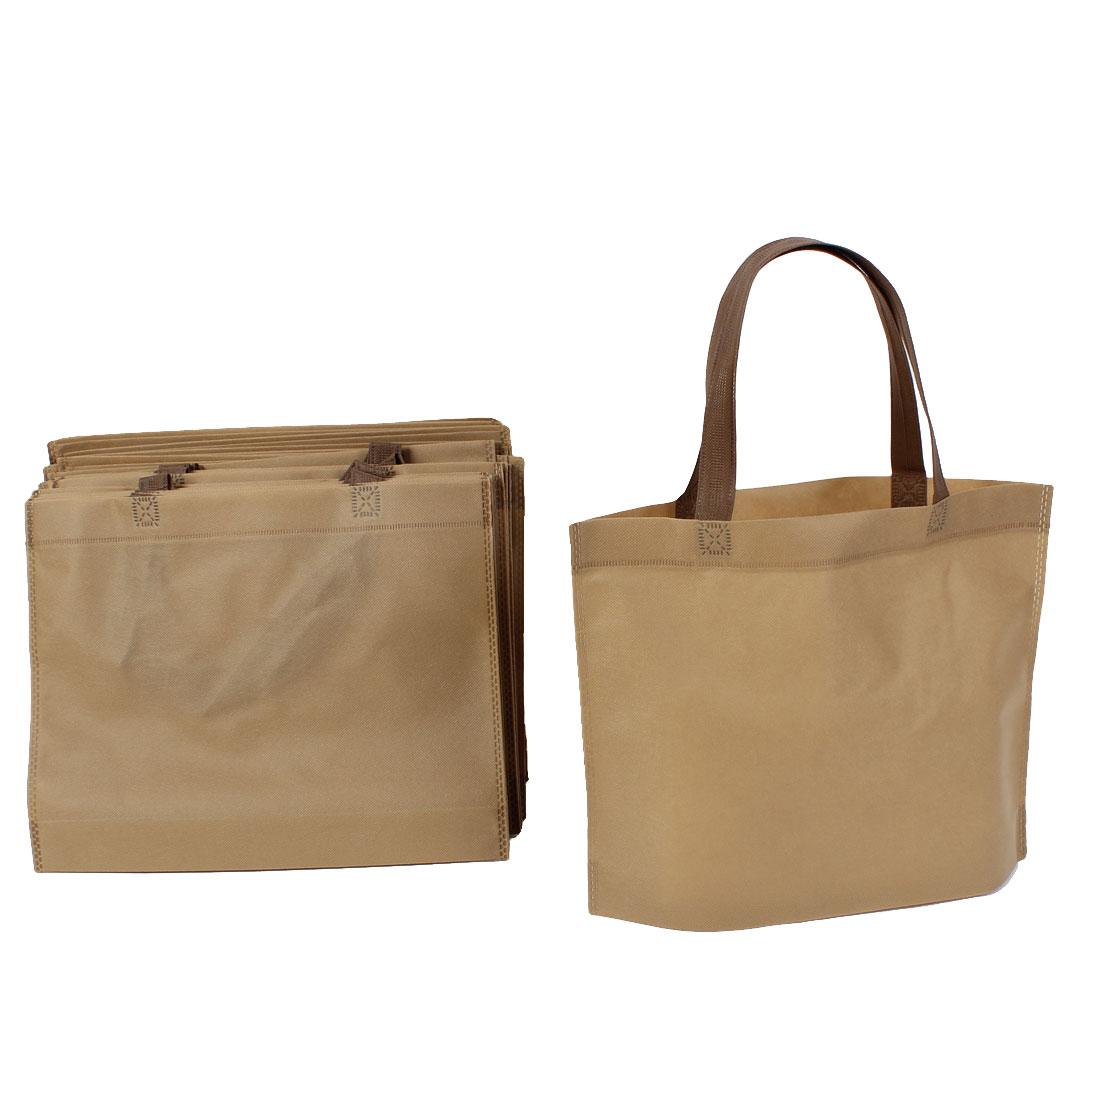 Non Woven Foldable Storage Shopping Bag 35cm x 28cm Light Brown 20 Pcs